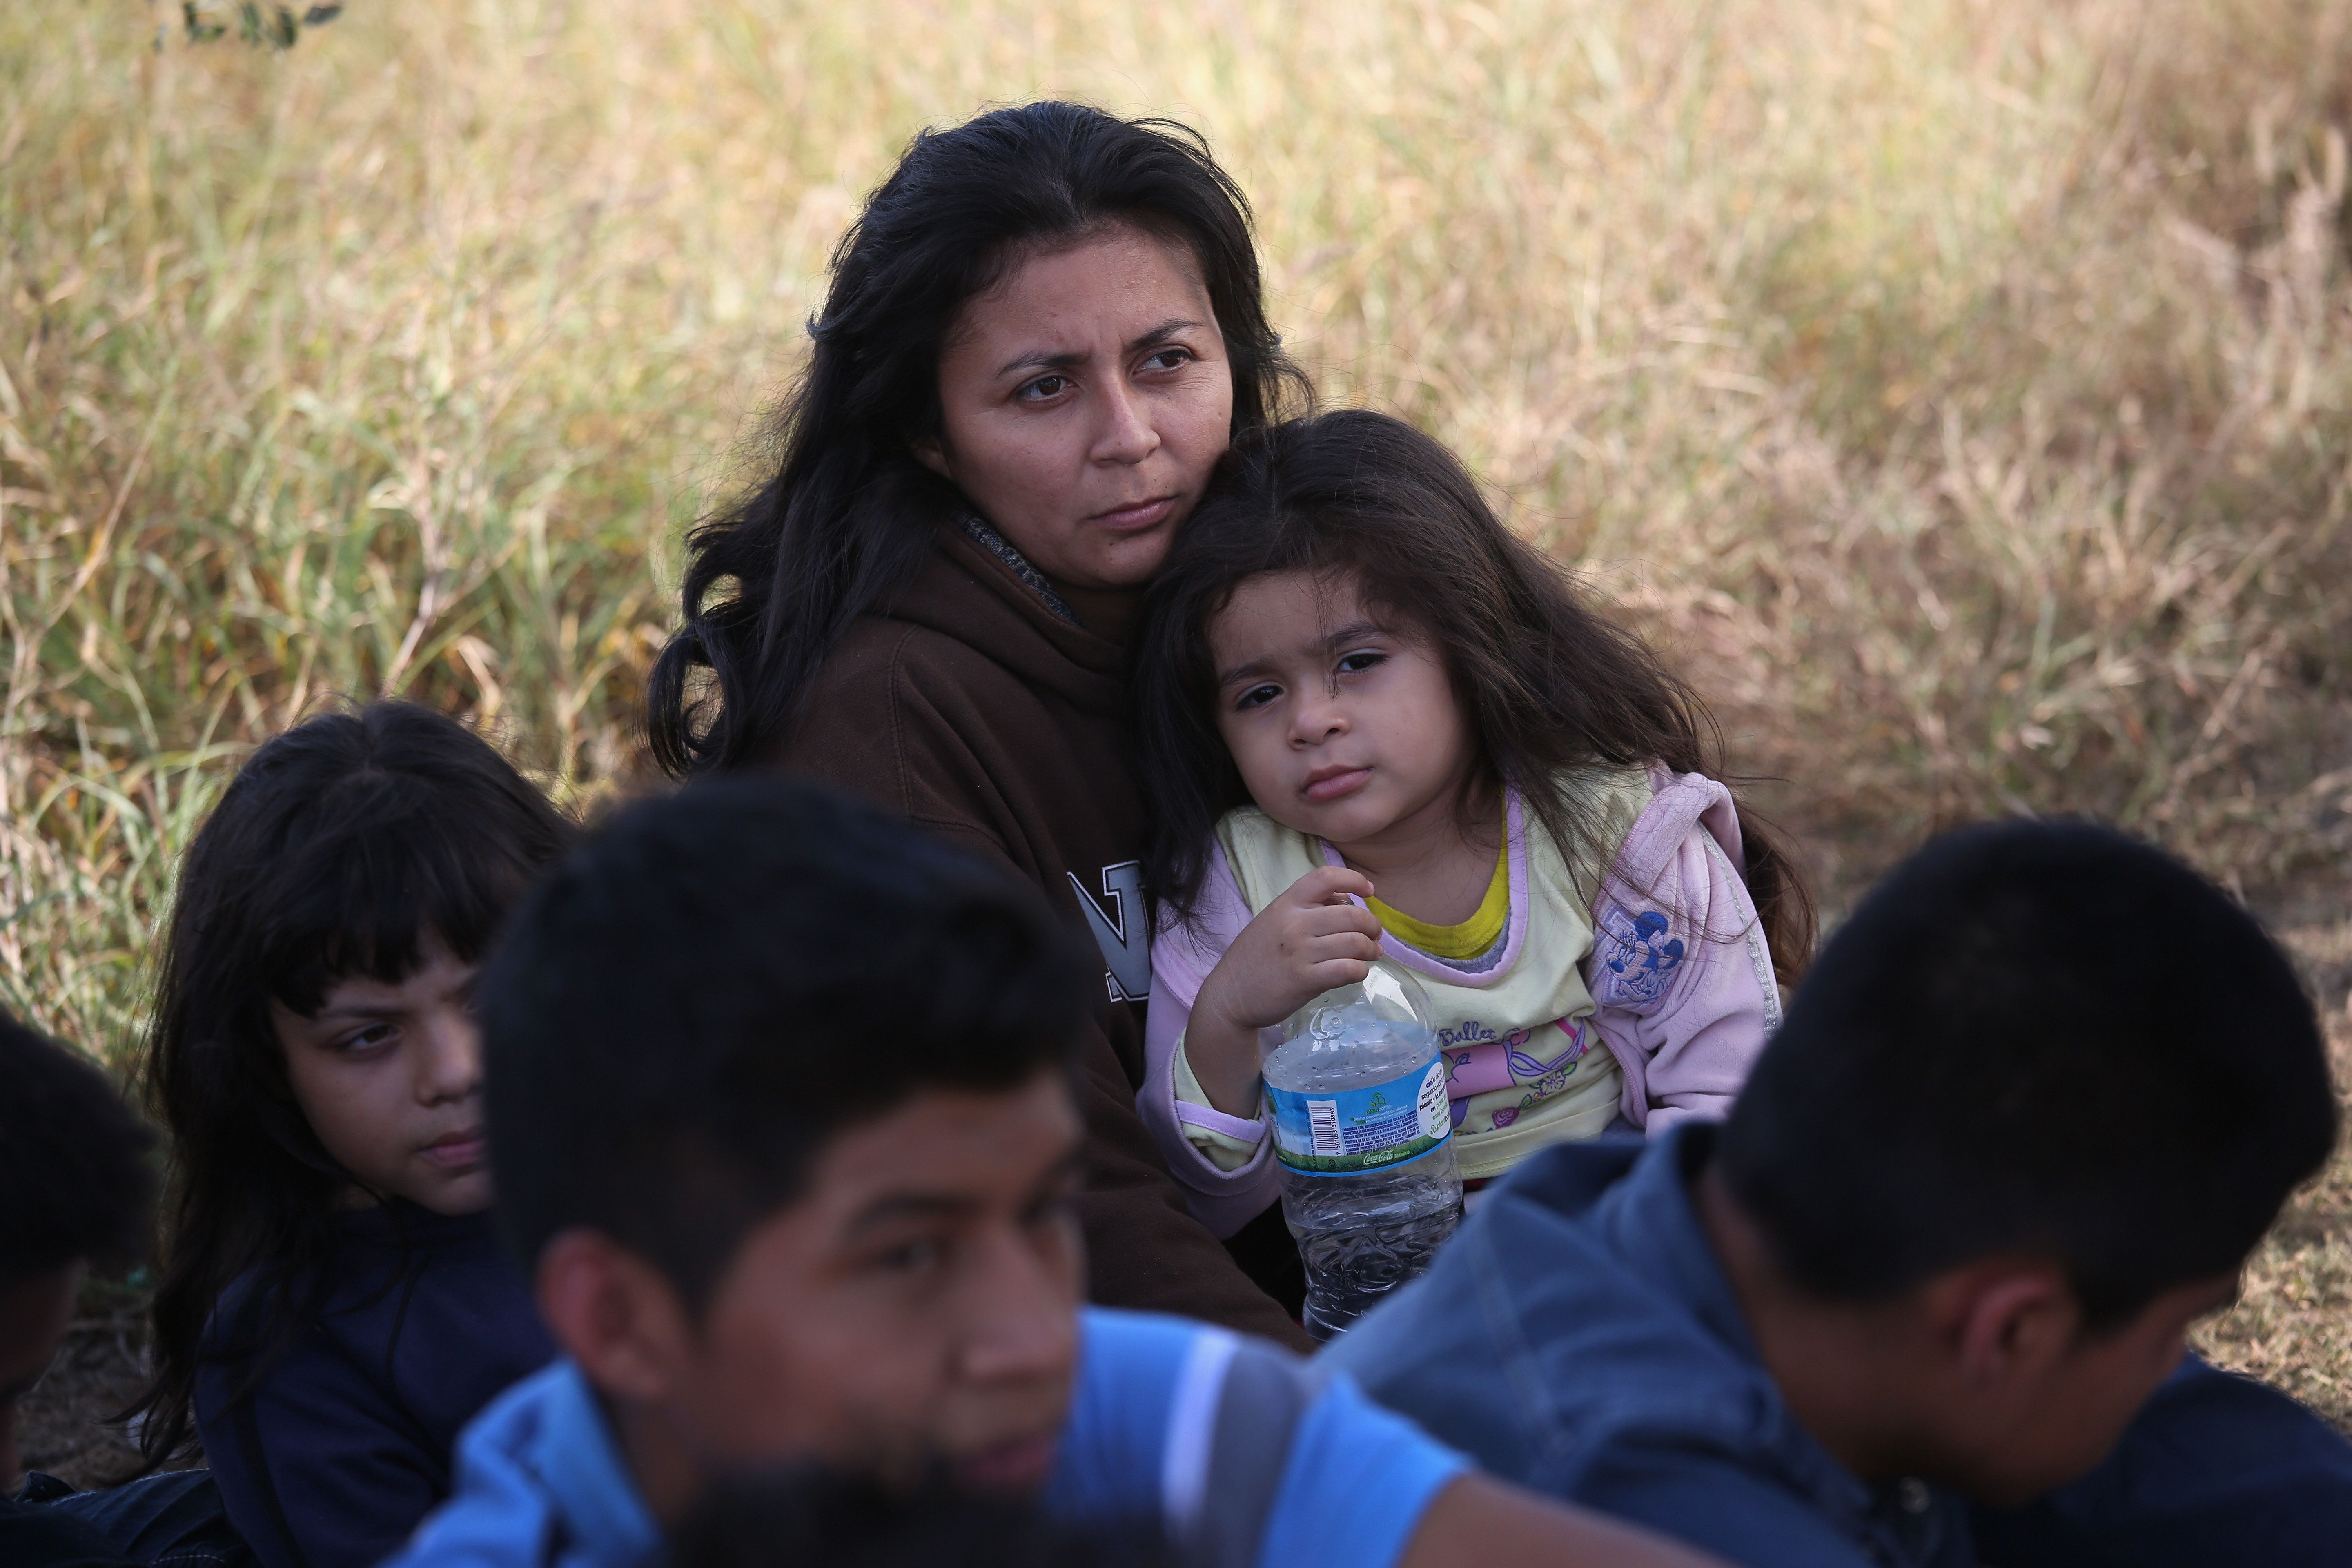 A Honduran mother holds her daughter, 3, after she turned her family in to U.S. Border Patrol agents on December 8, 2015 near